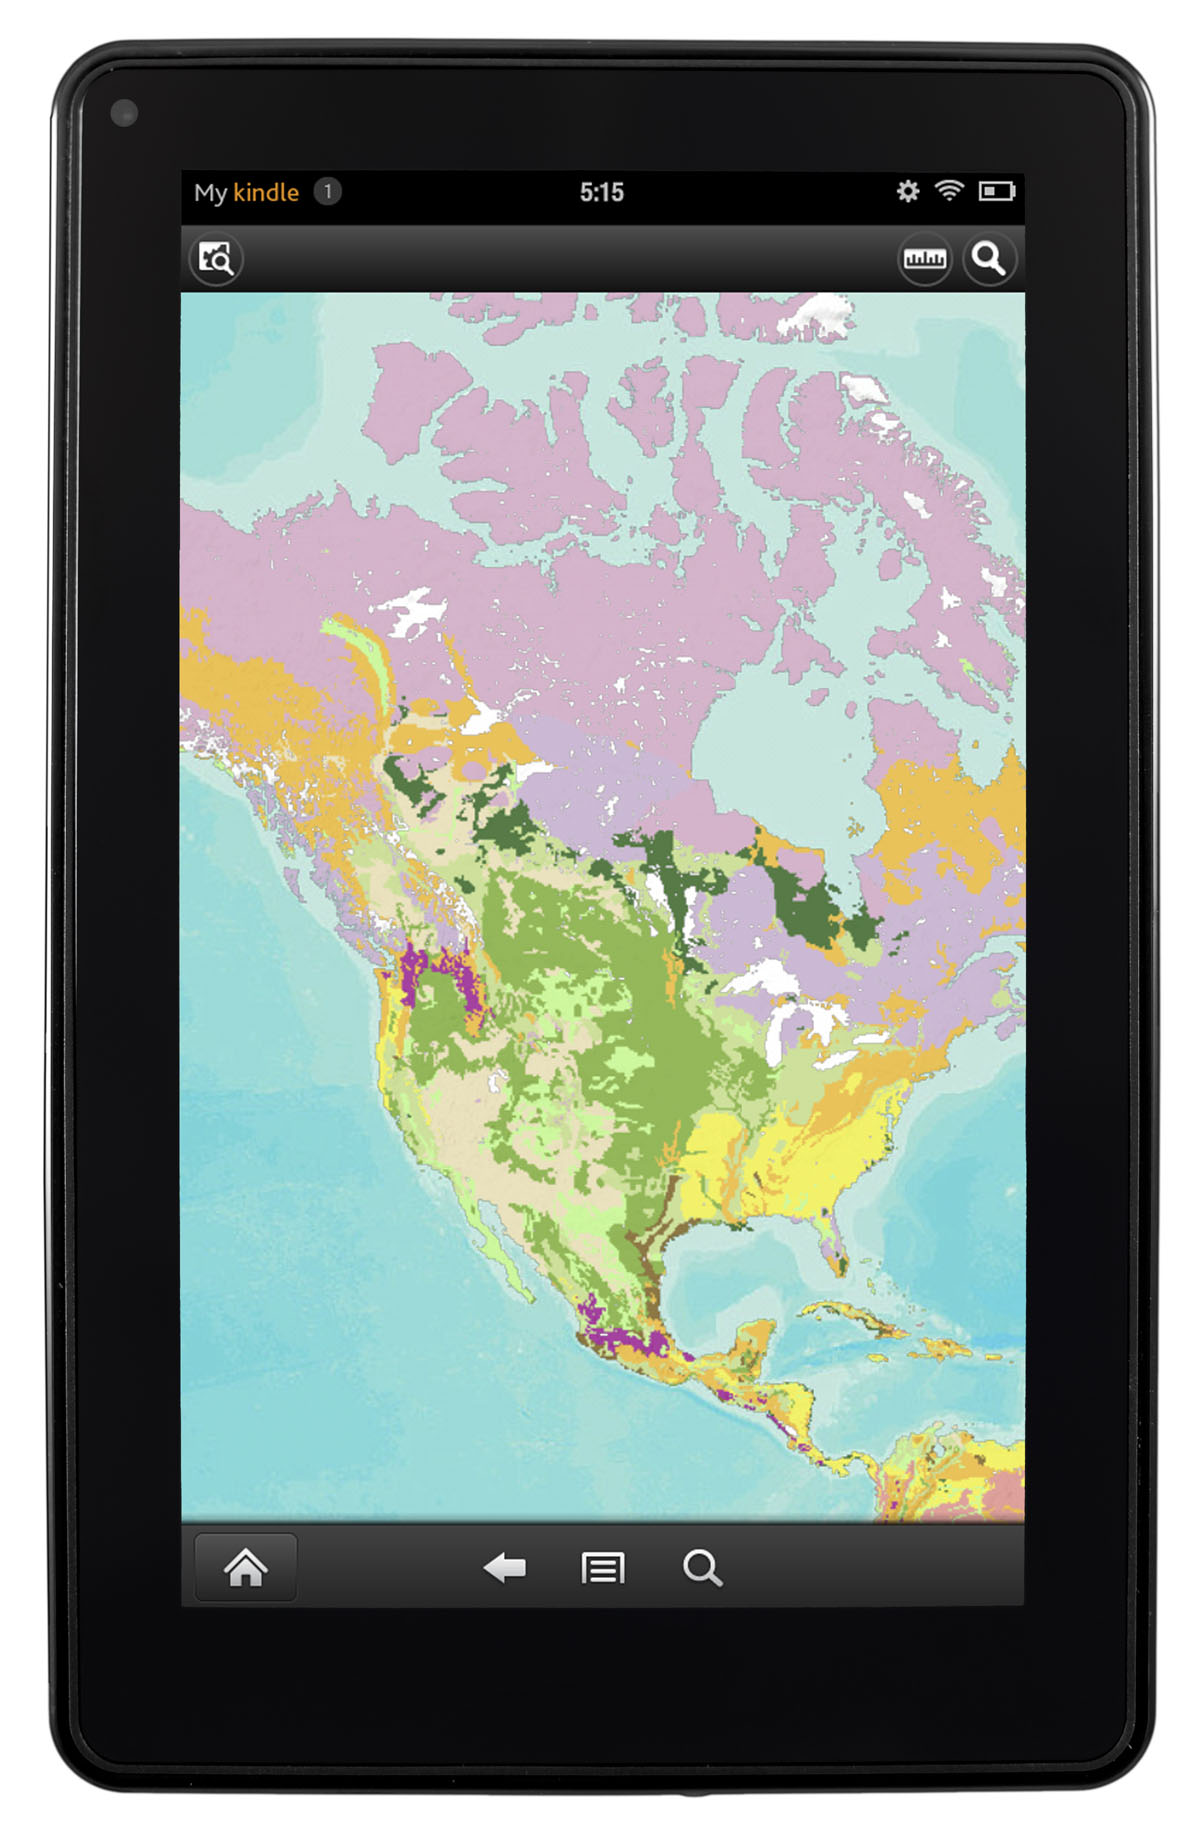 access and edit esri maps on kindle fire